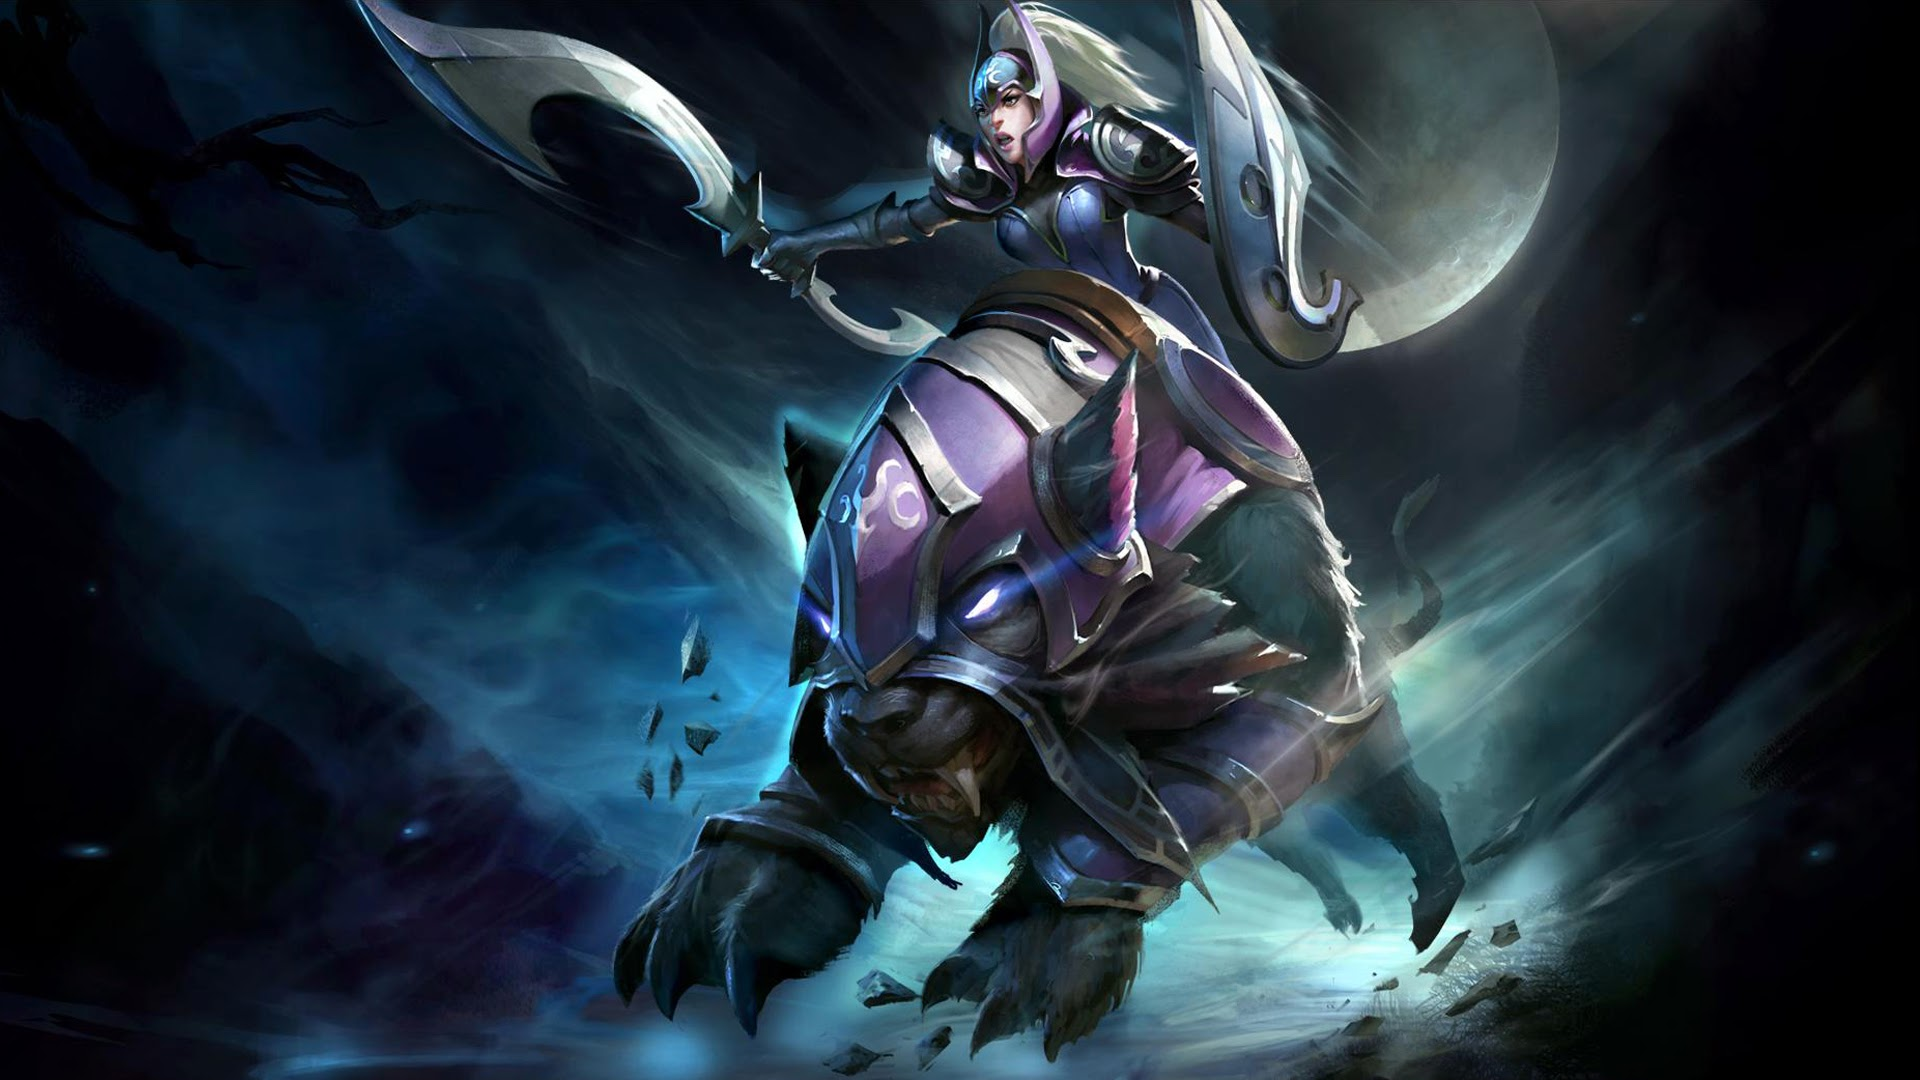 luna moon rider dota 2 13 wallpaper hd